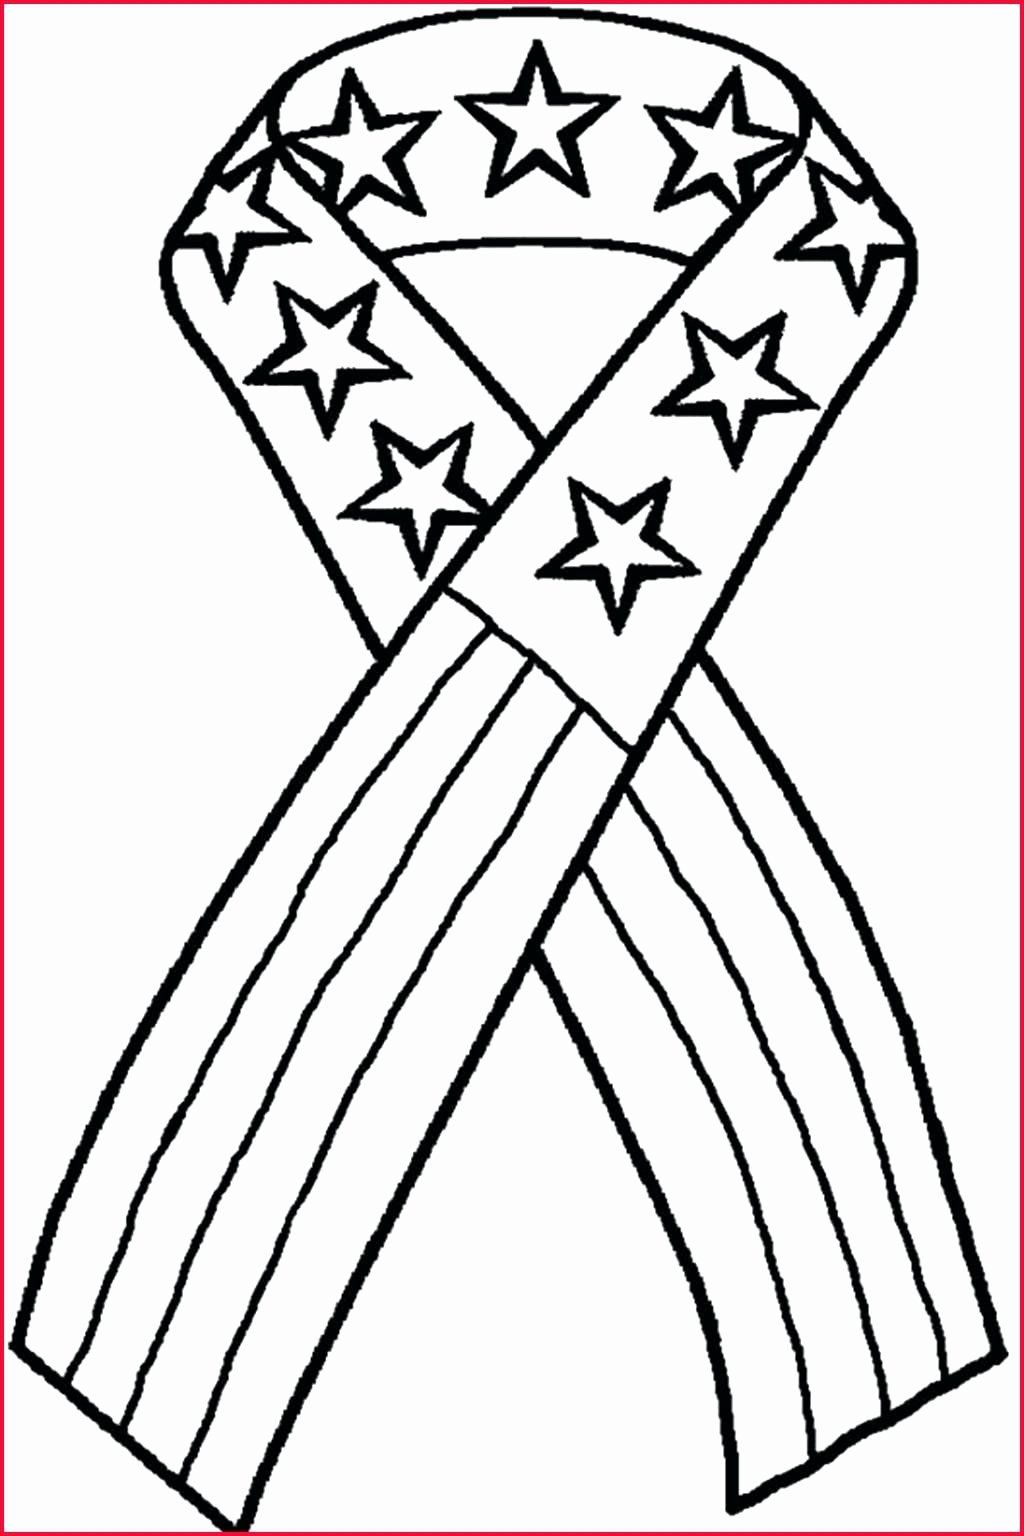 Free Patriotic Coloring Pages Printables Luxury Patriotic Printable Coloring Pages Album